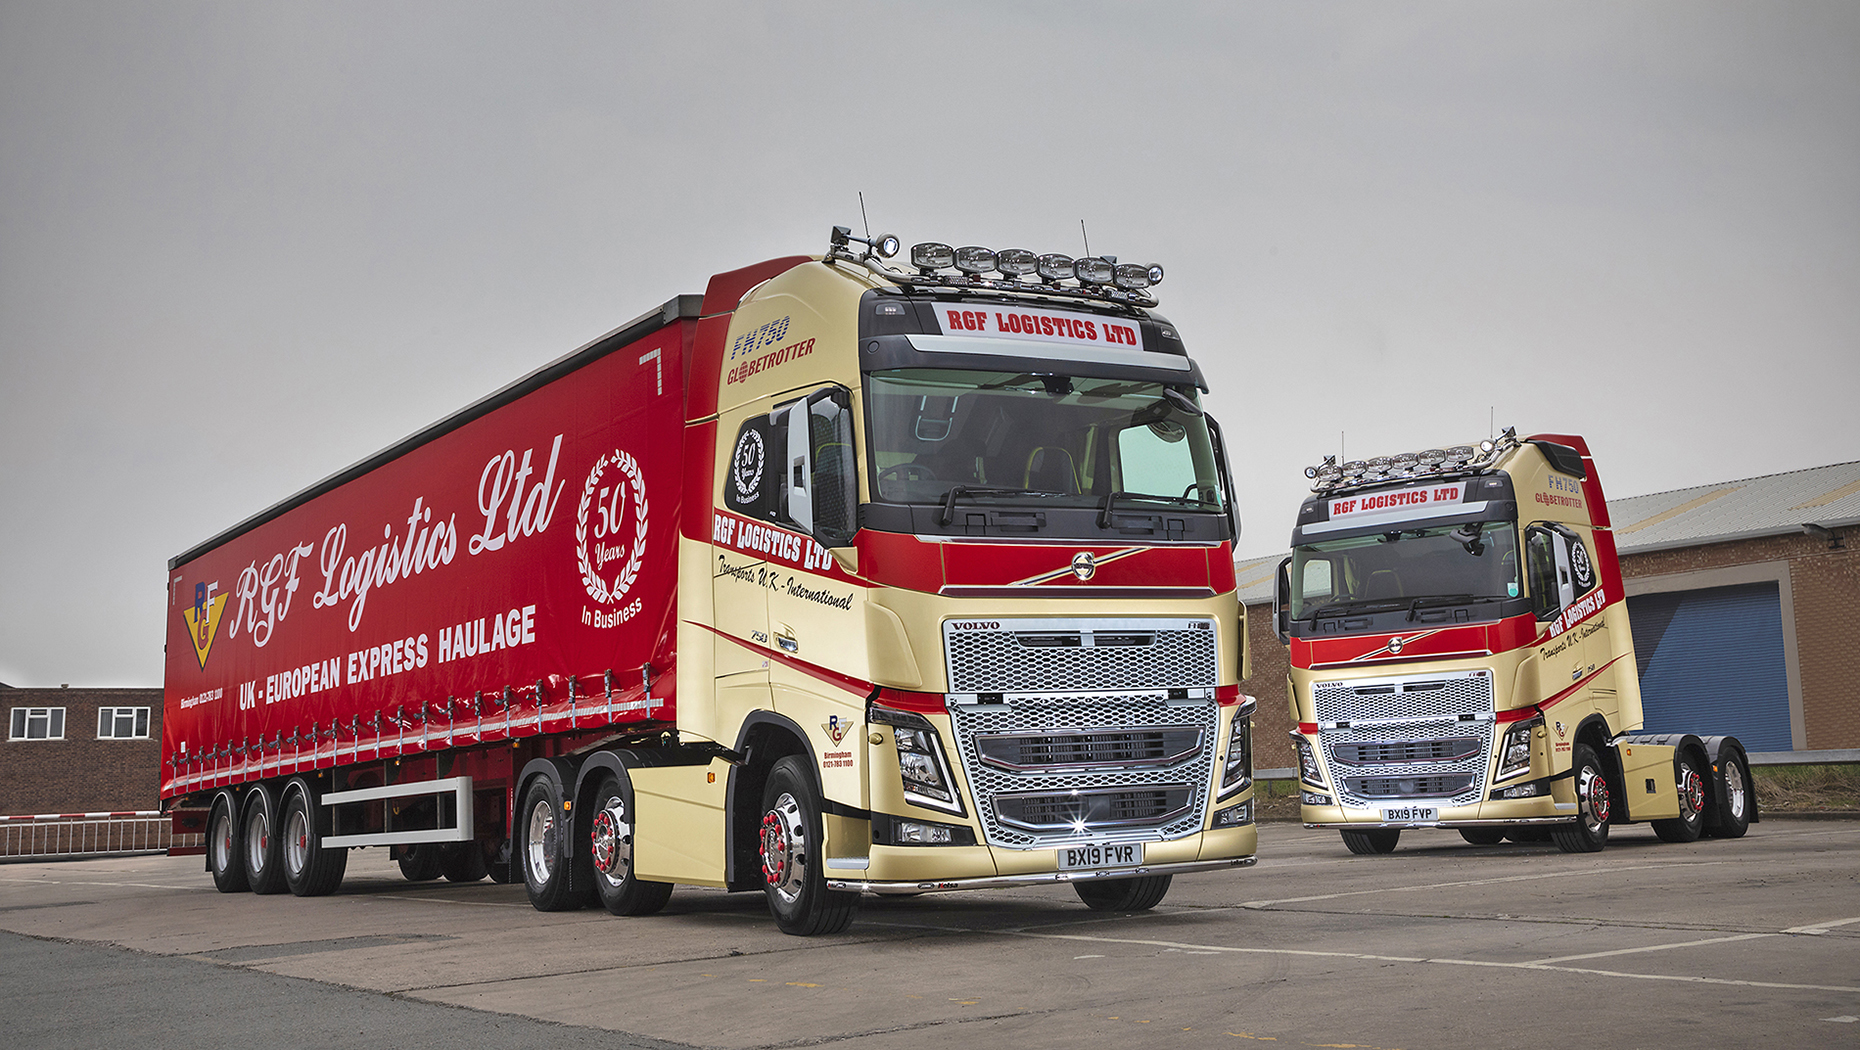 Two new Volvo FH16 750 tractor units create a golden opportunity for RGF Logistics